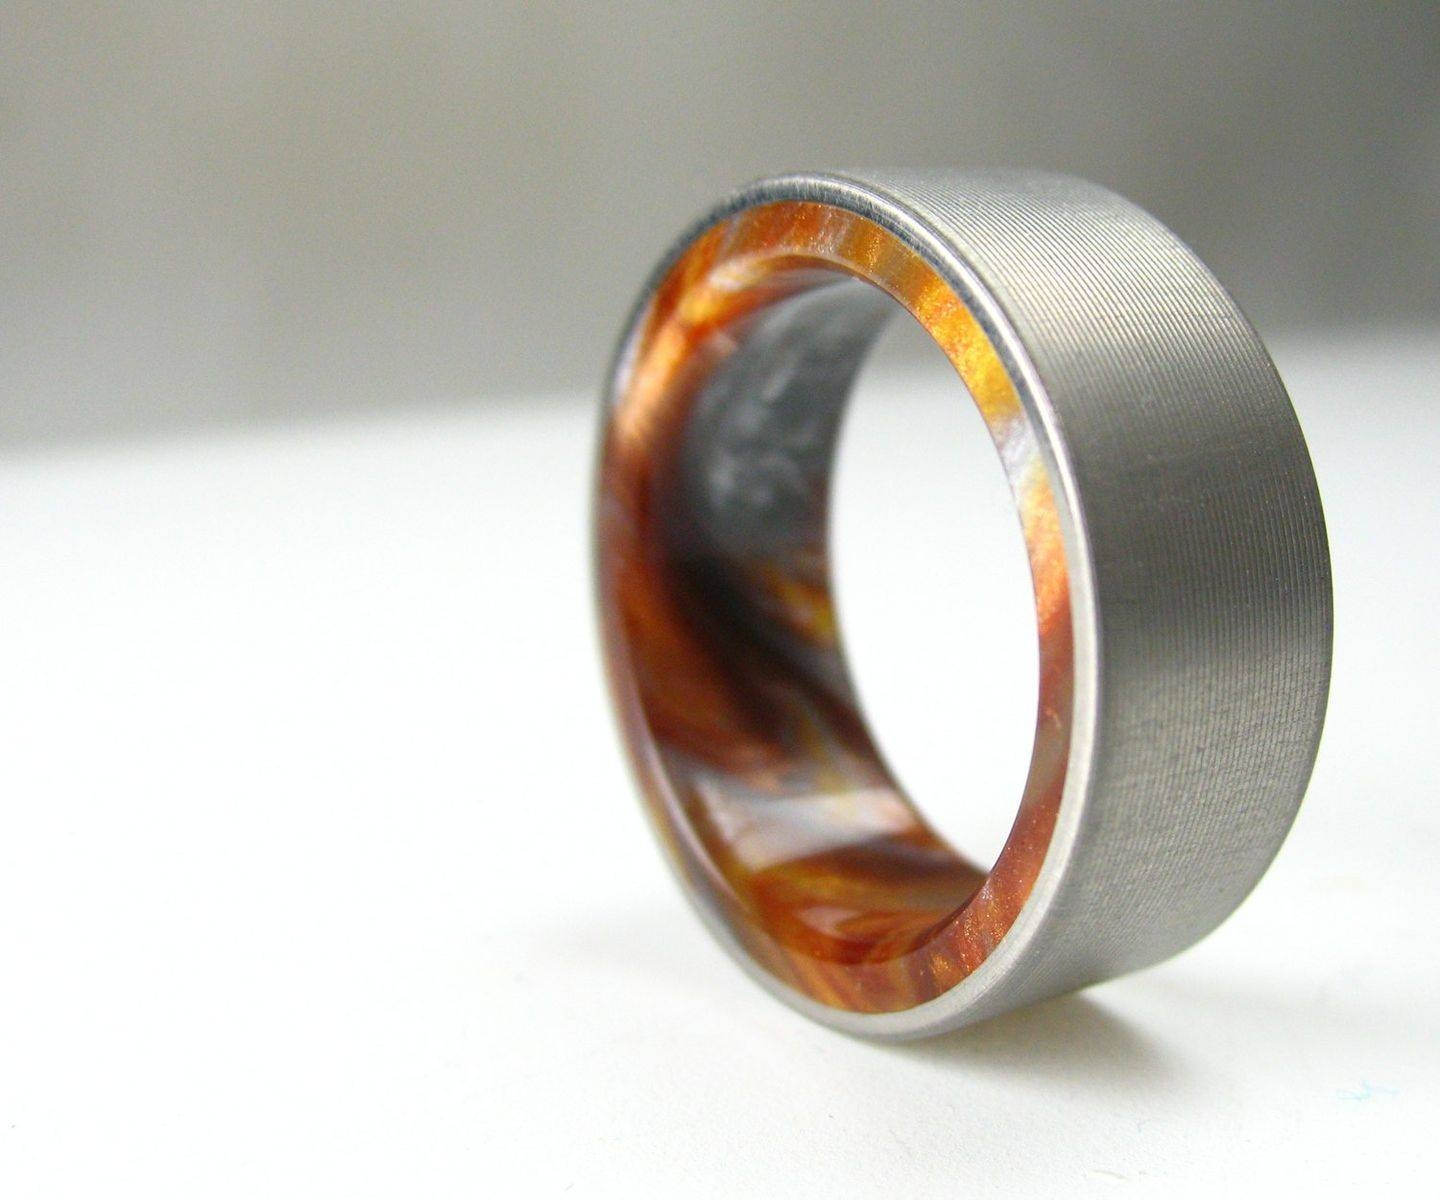 Modern Wedding Bands | Contemporary Wedding Rings | Custommade Pertaining To Mens Wooden Wedding Bands (View 7 of 15)